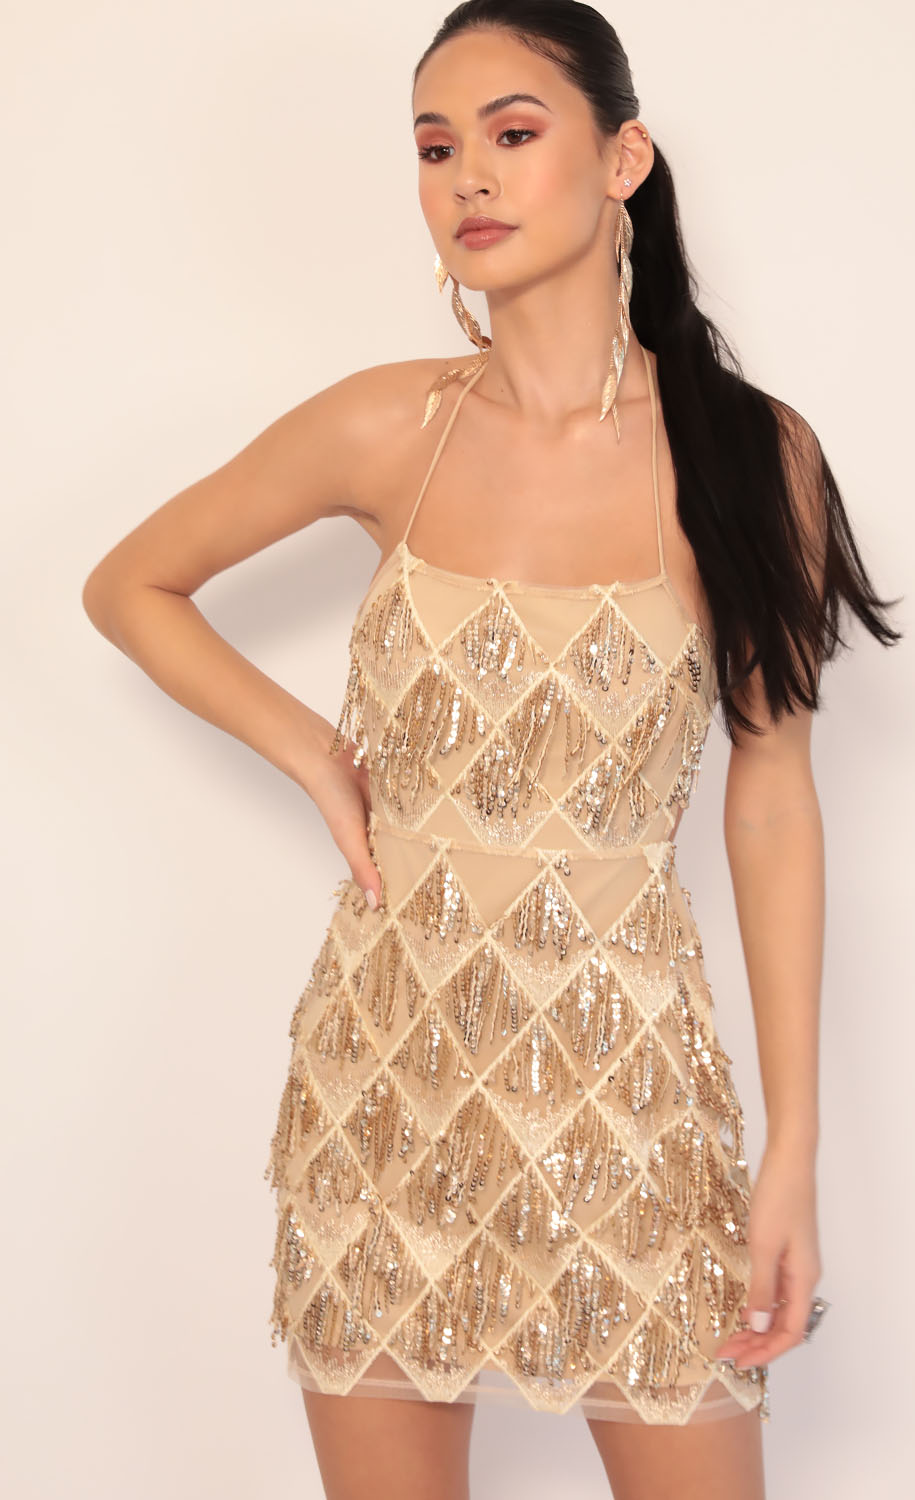 Calabria Sequin Fringe Dress in Champagne